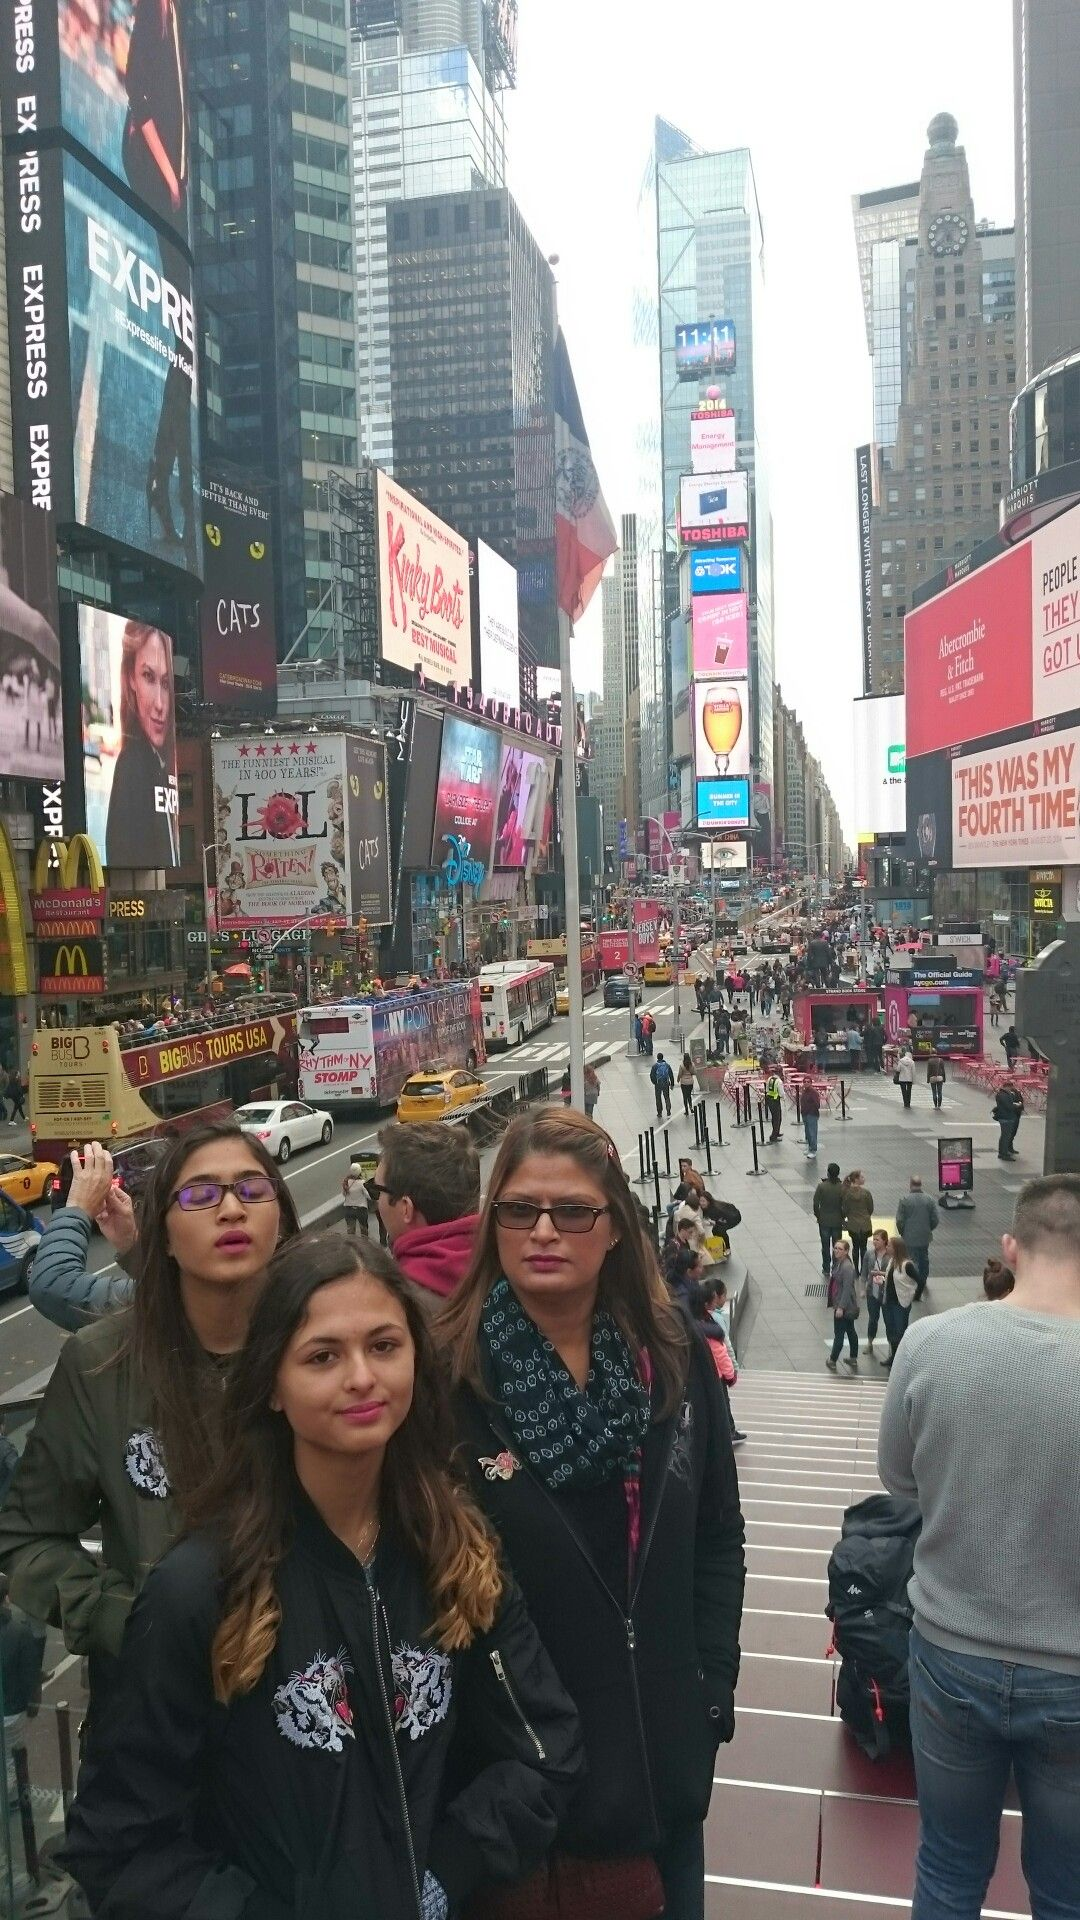 time square ⬜ nothing like it times square square